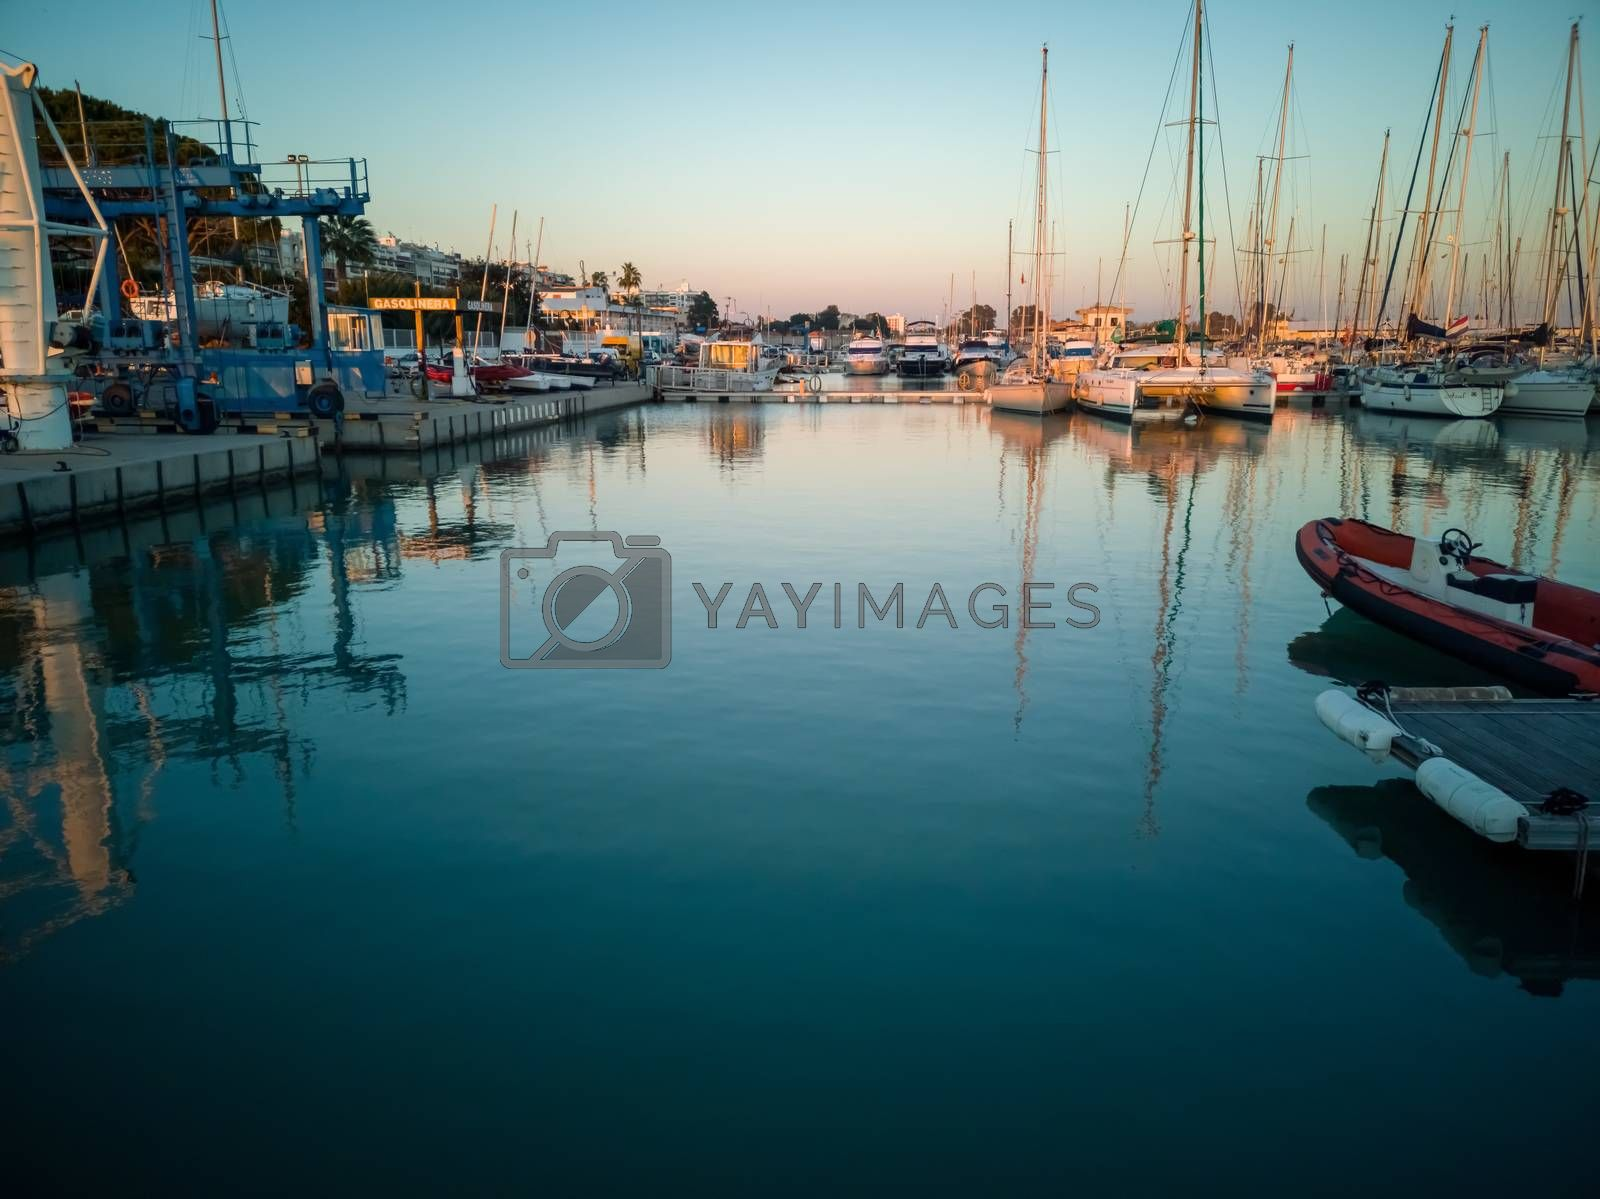 Burriana marina with boats in the sea in long exposure